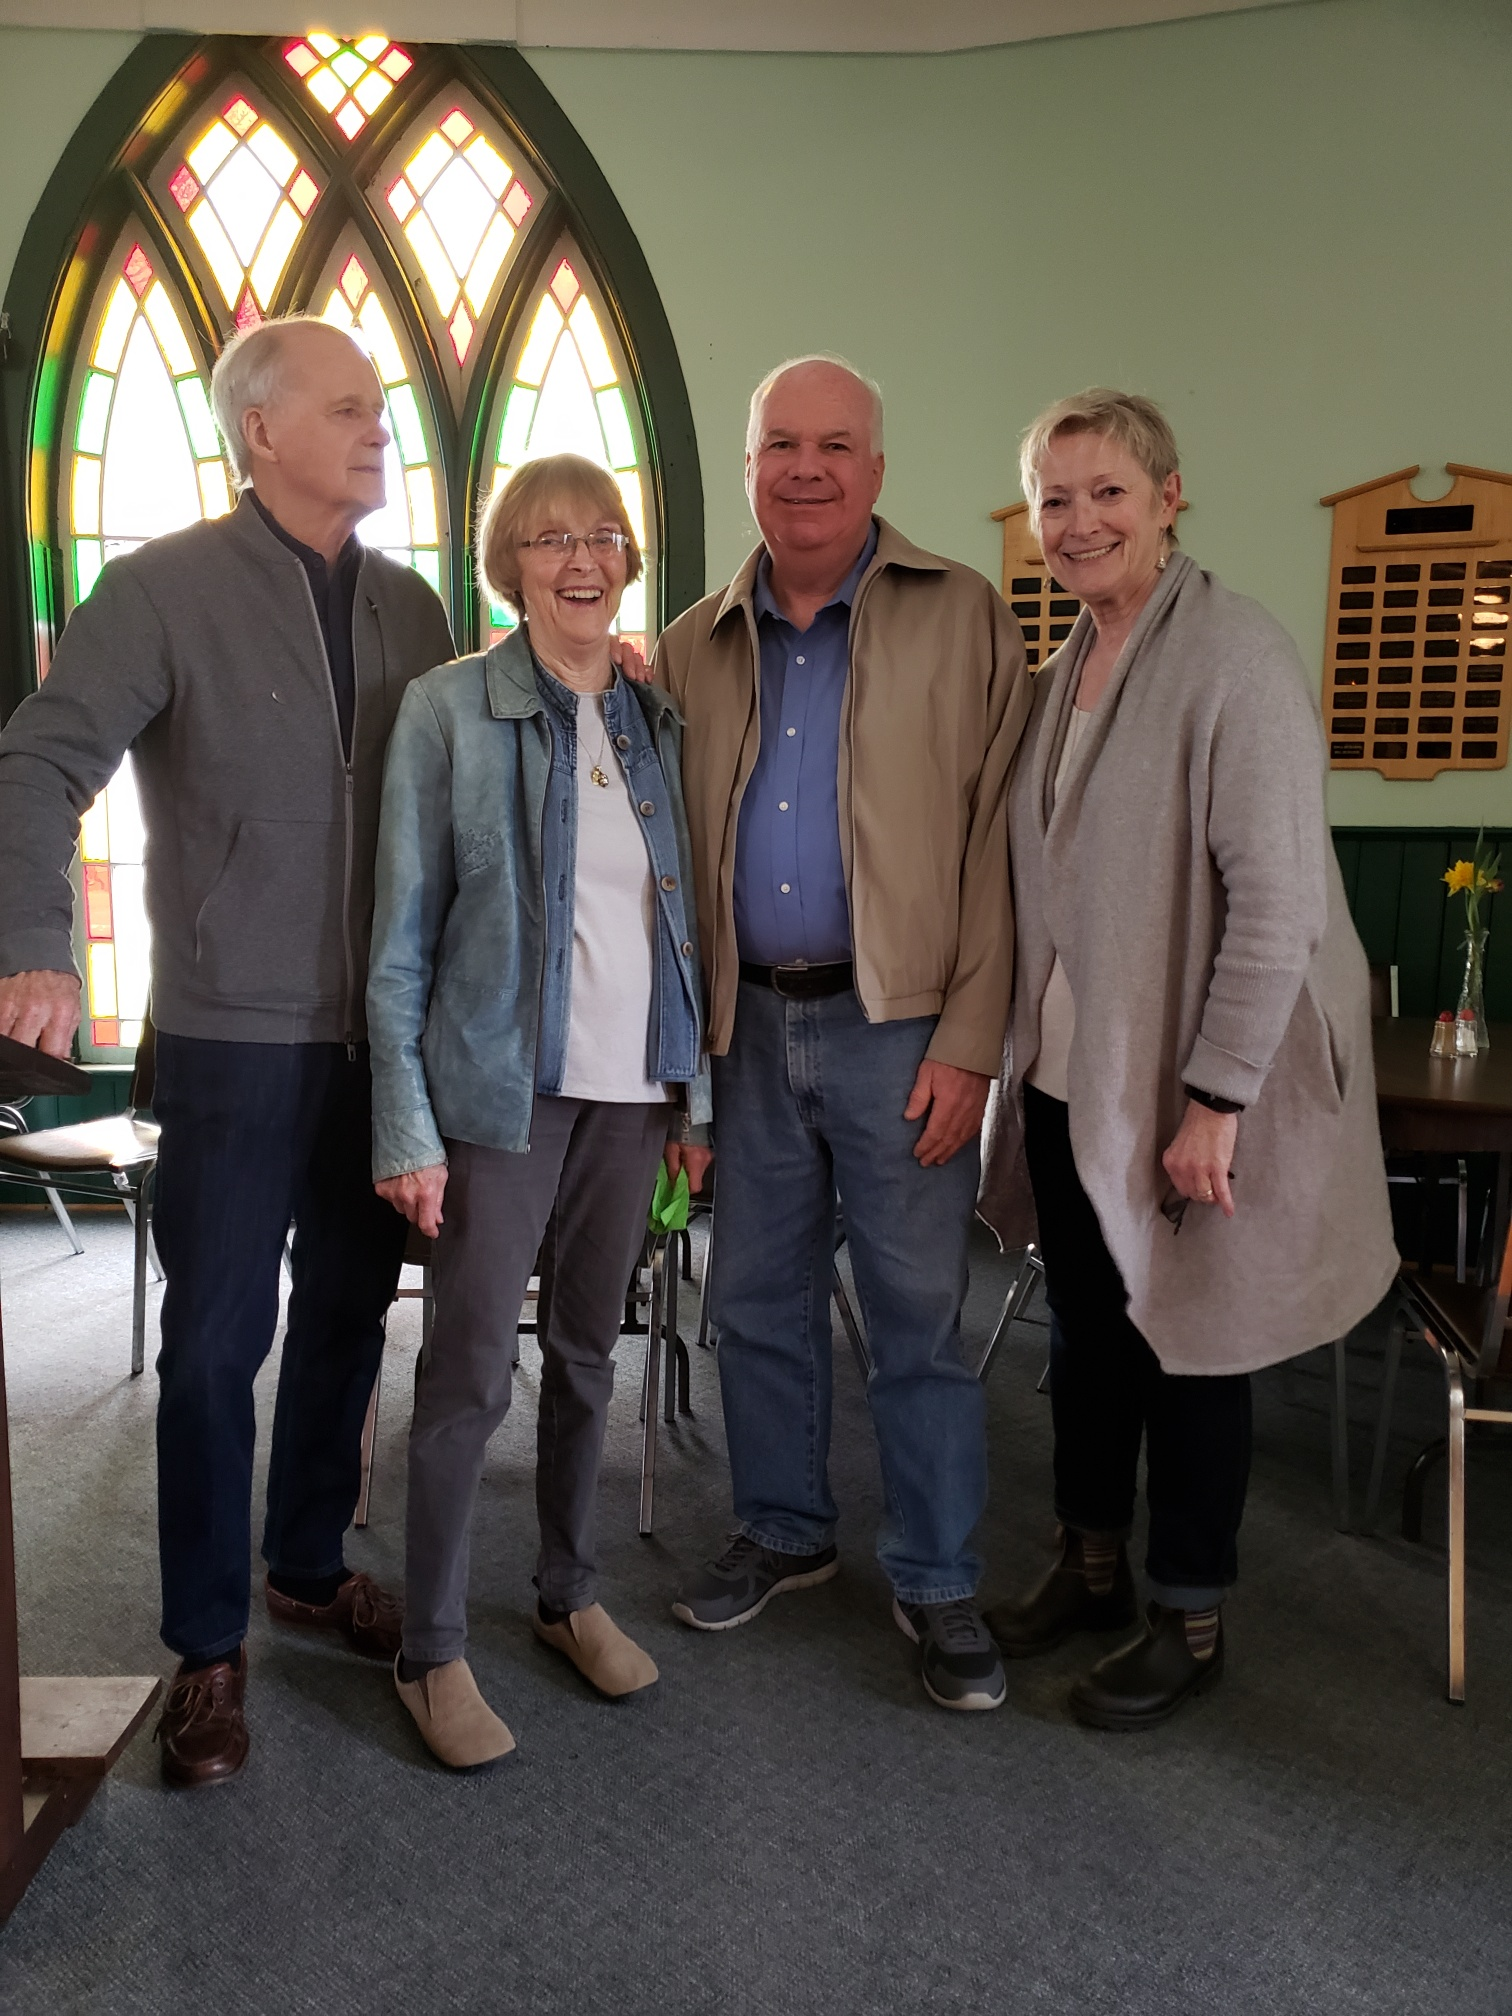 Jim at leek supper singhampton May 11 2019 with Bud Christiansen and wife Patricia Miscampbell